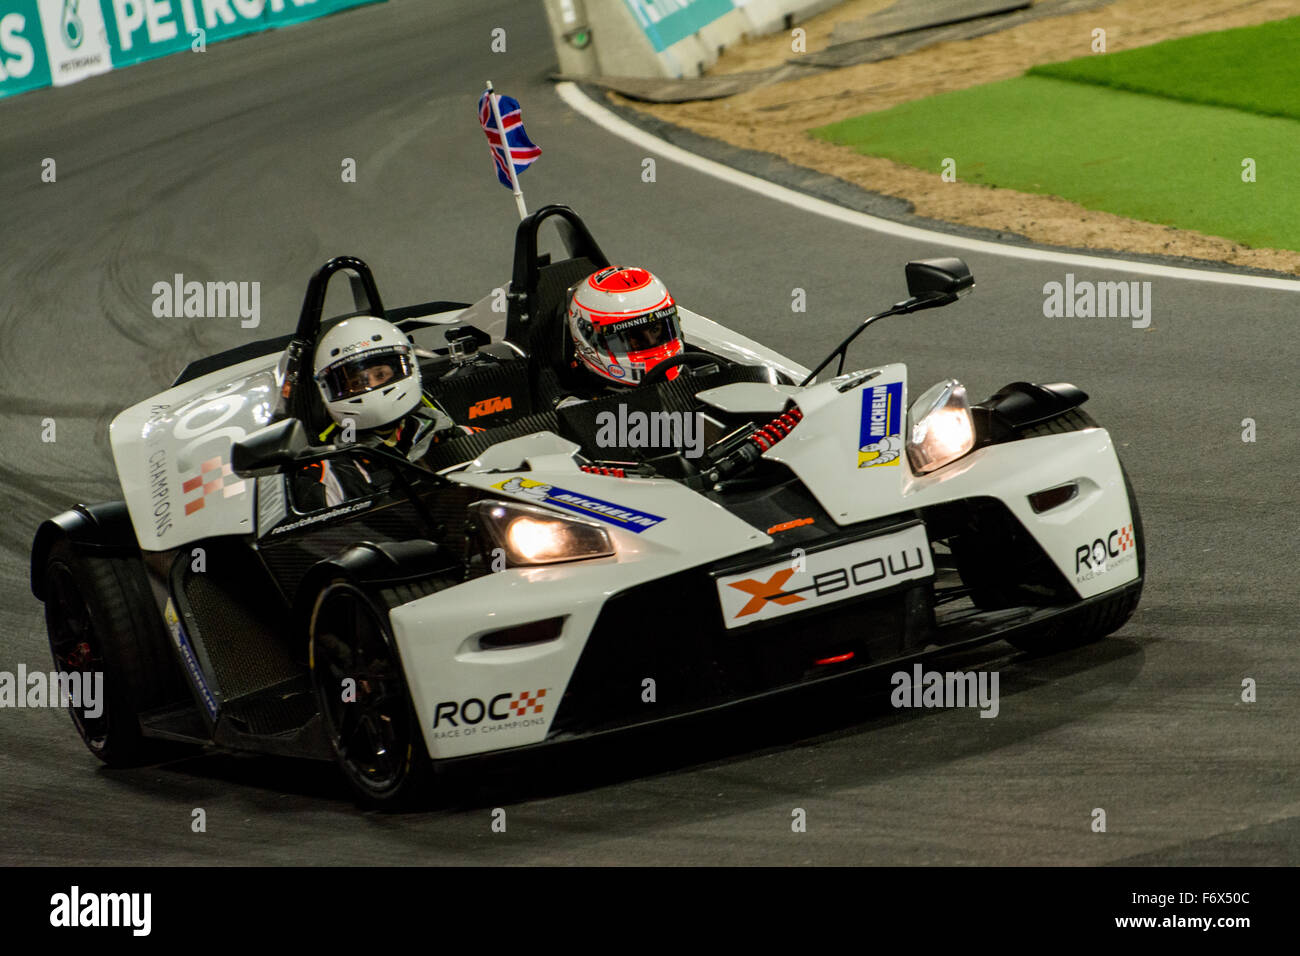 London, UK. 20th Nov, 2015. 2009 Formula 1 World Champion Jenson Button of England drives during ROC Nations Cup Stock Photo